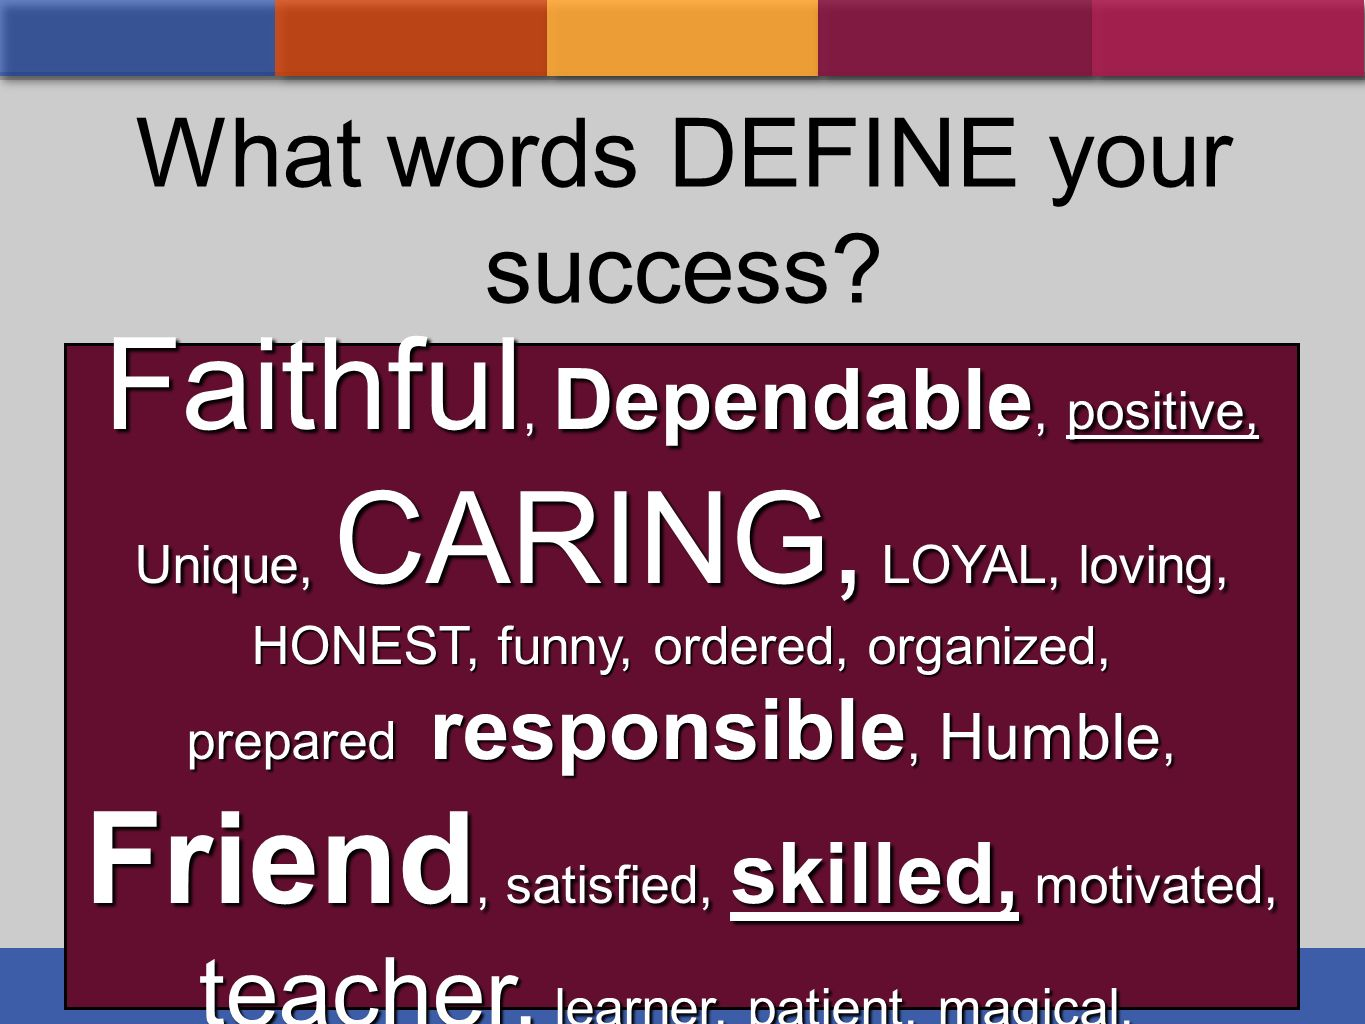 What words DEFINE your success? Faithful, Dependable, positive, Unique, CARING, LOYAL, loving, HONEST, funny, ordered, organized, prepared responsible